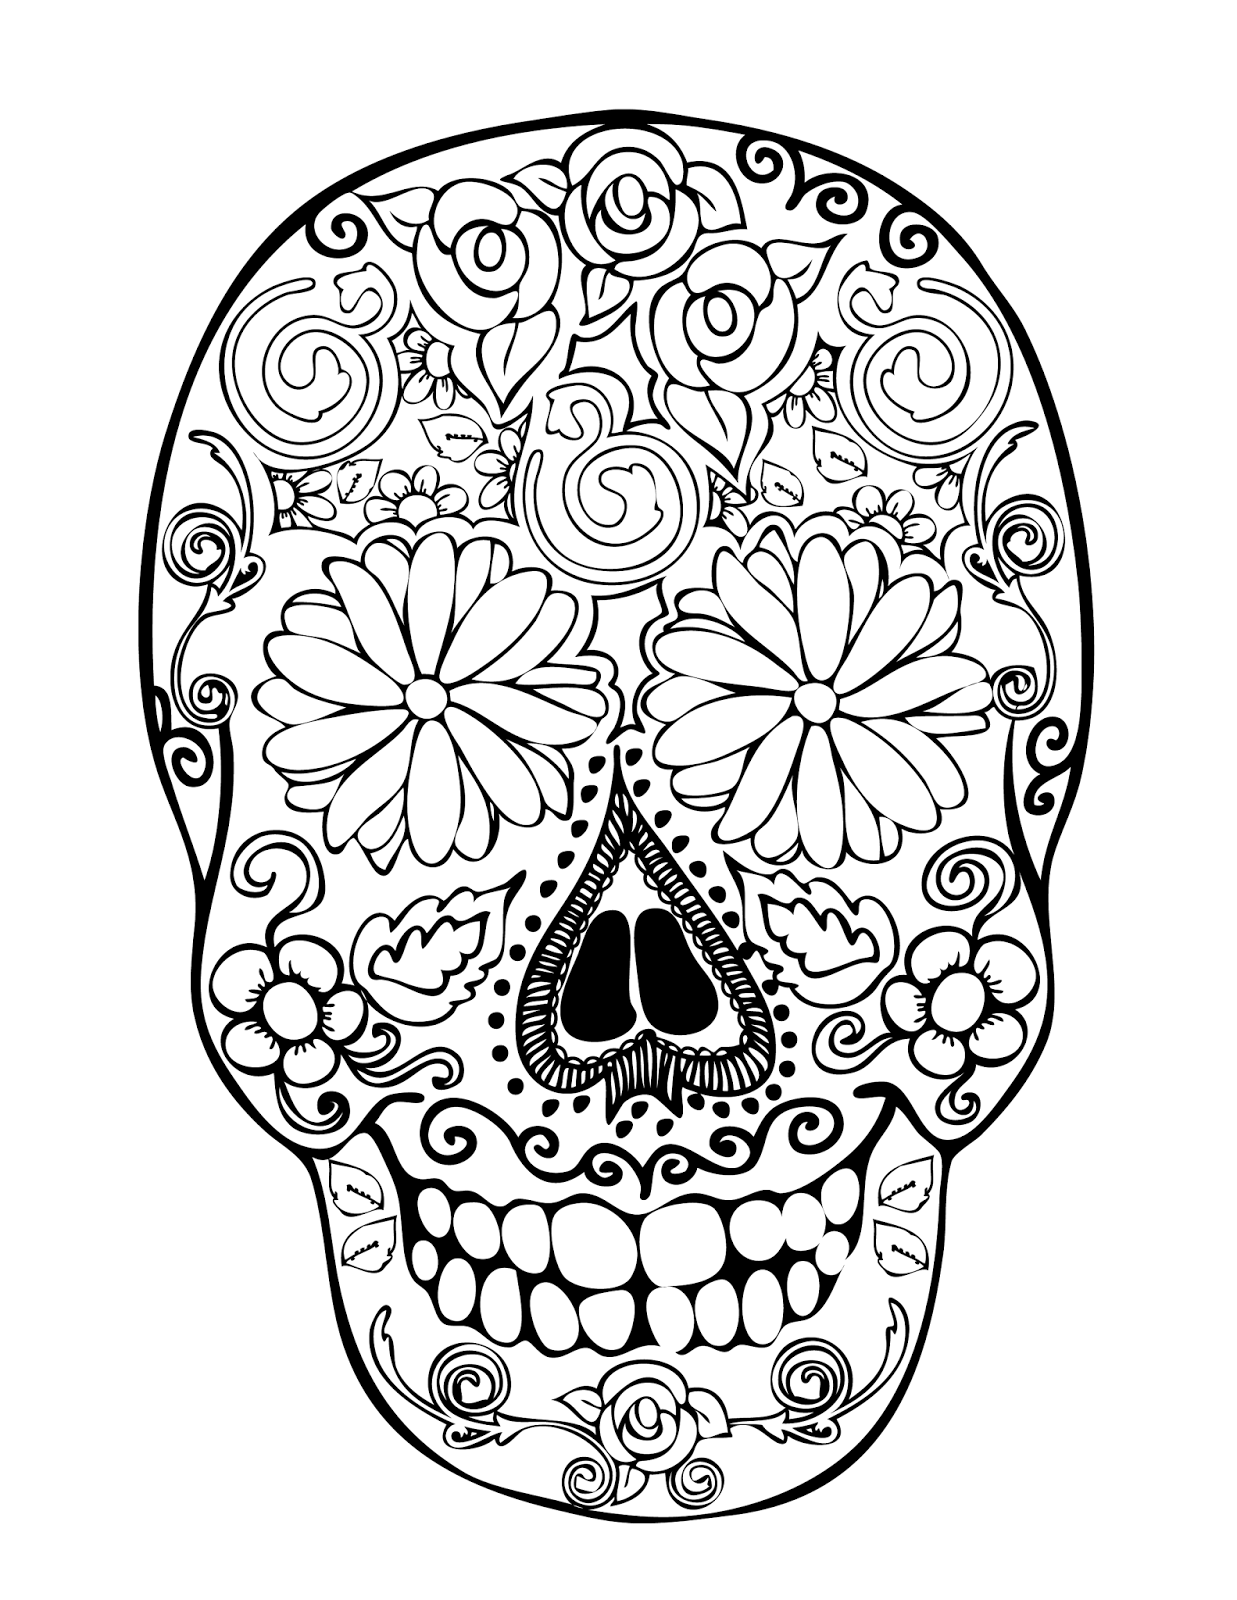 Printable Skull Coloring Pages Ideas 26 Skull Coloring Pages Coloring Pages Free Coloring Pages